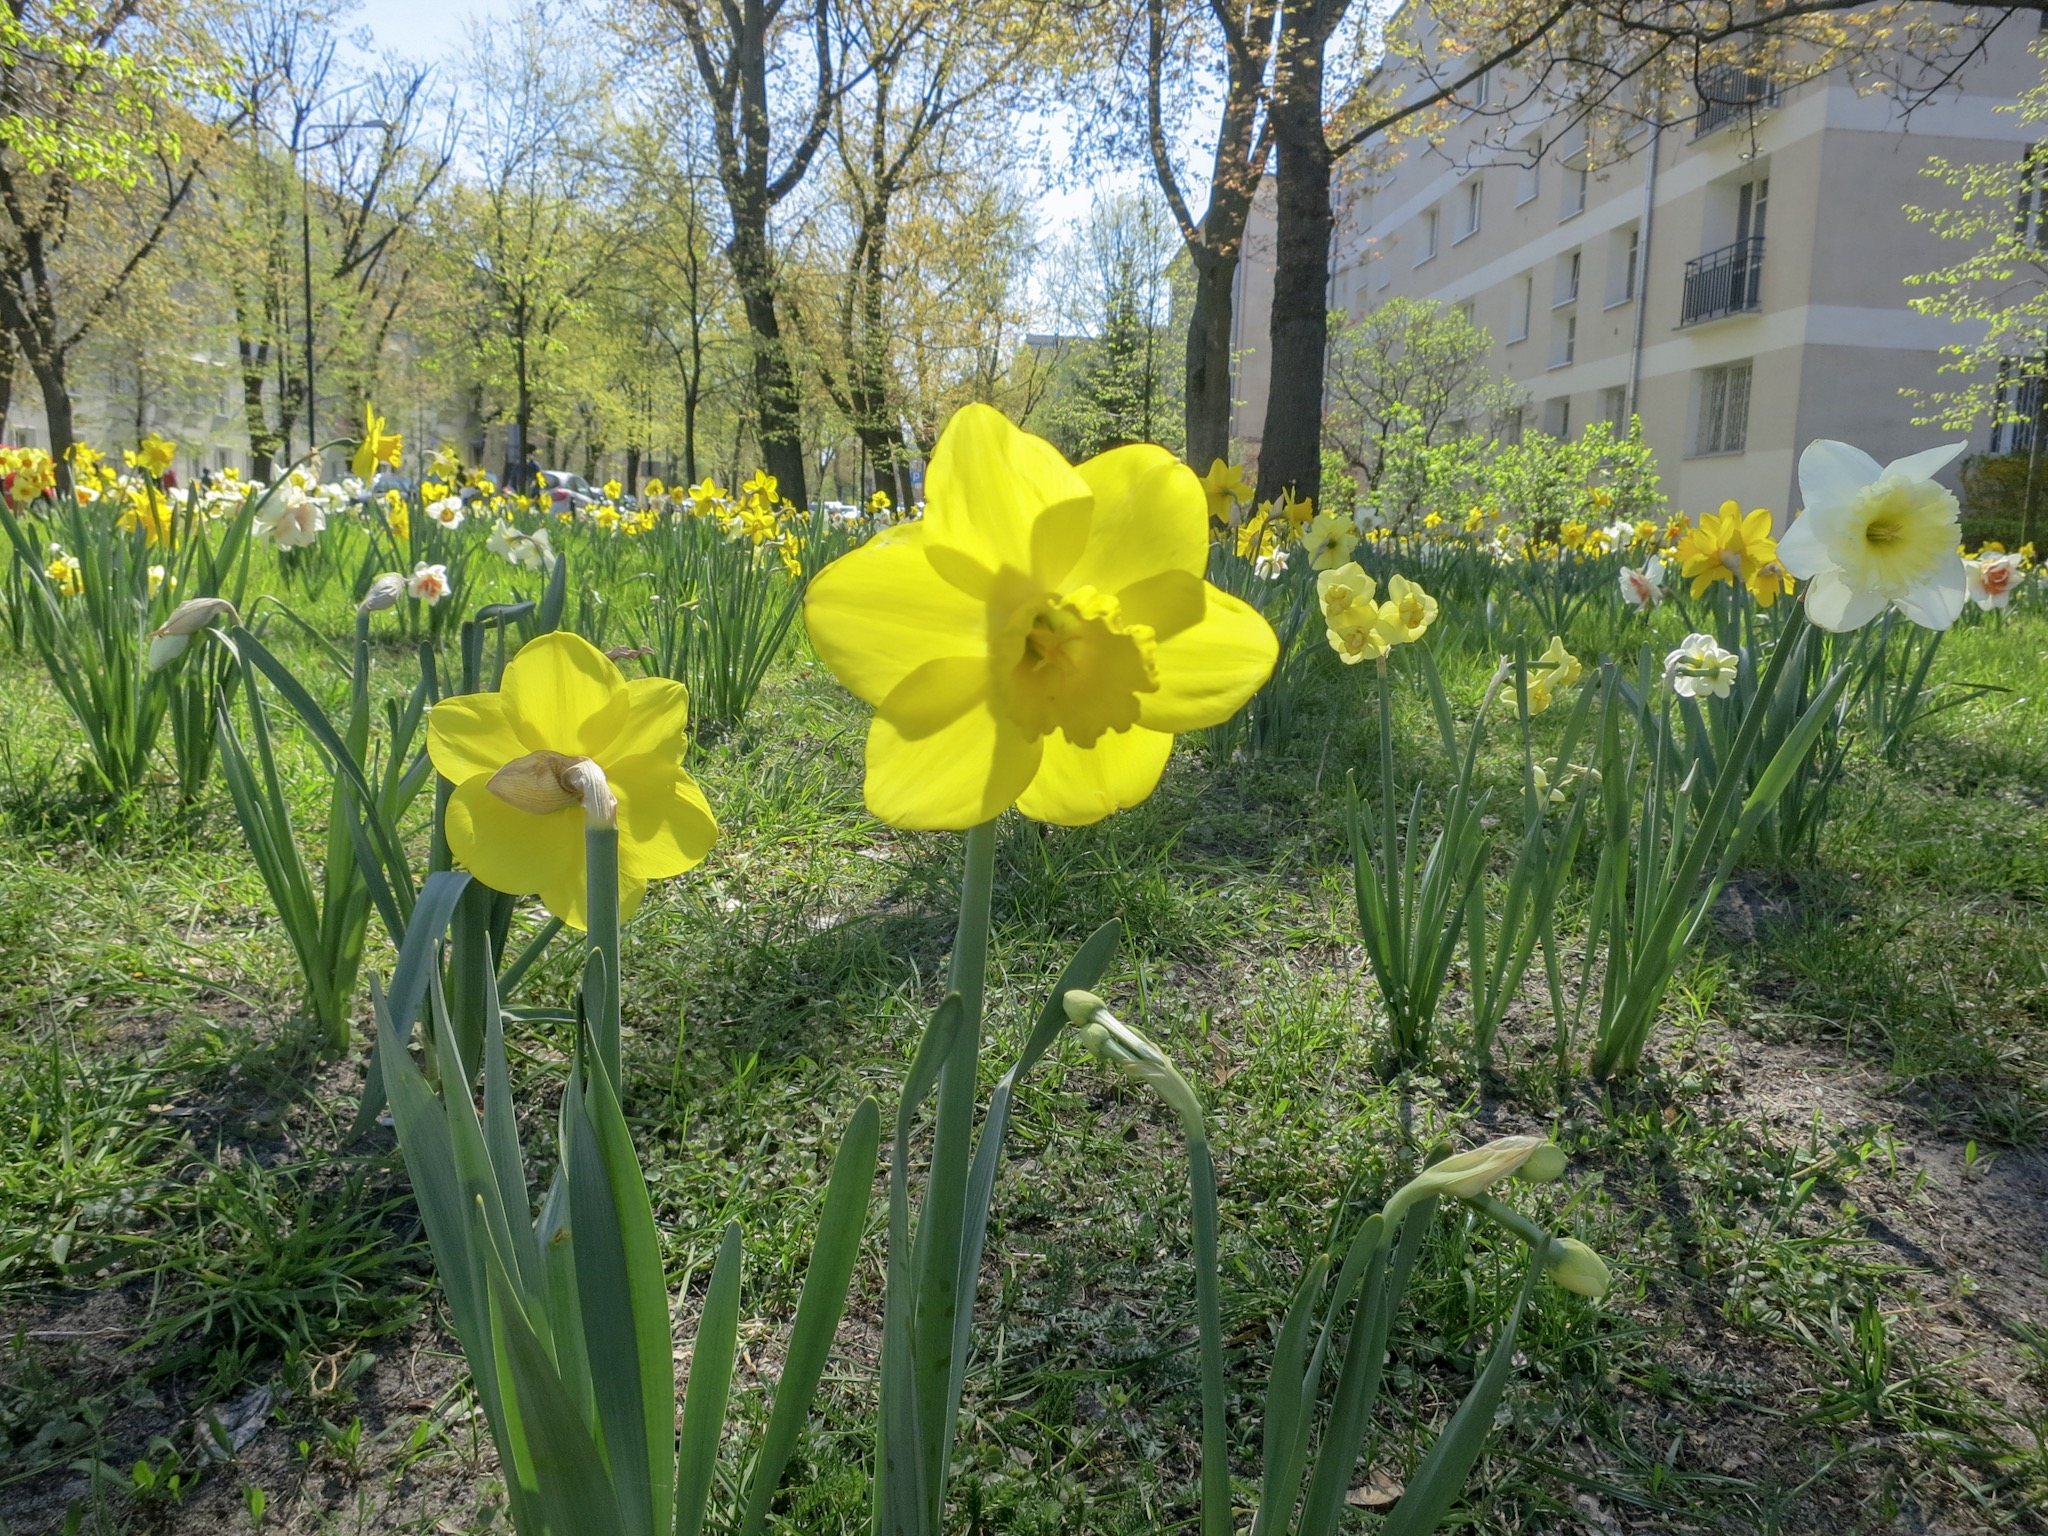 Daffodils planted around the old Jewish quarter of Warsaw